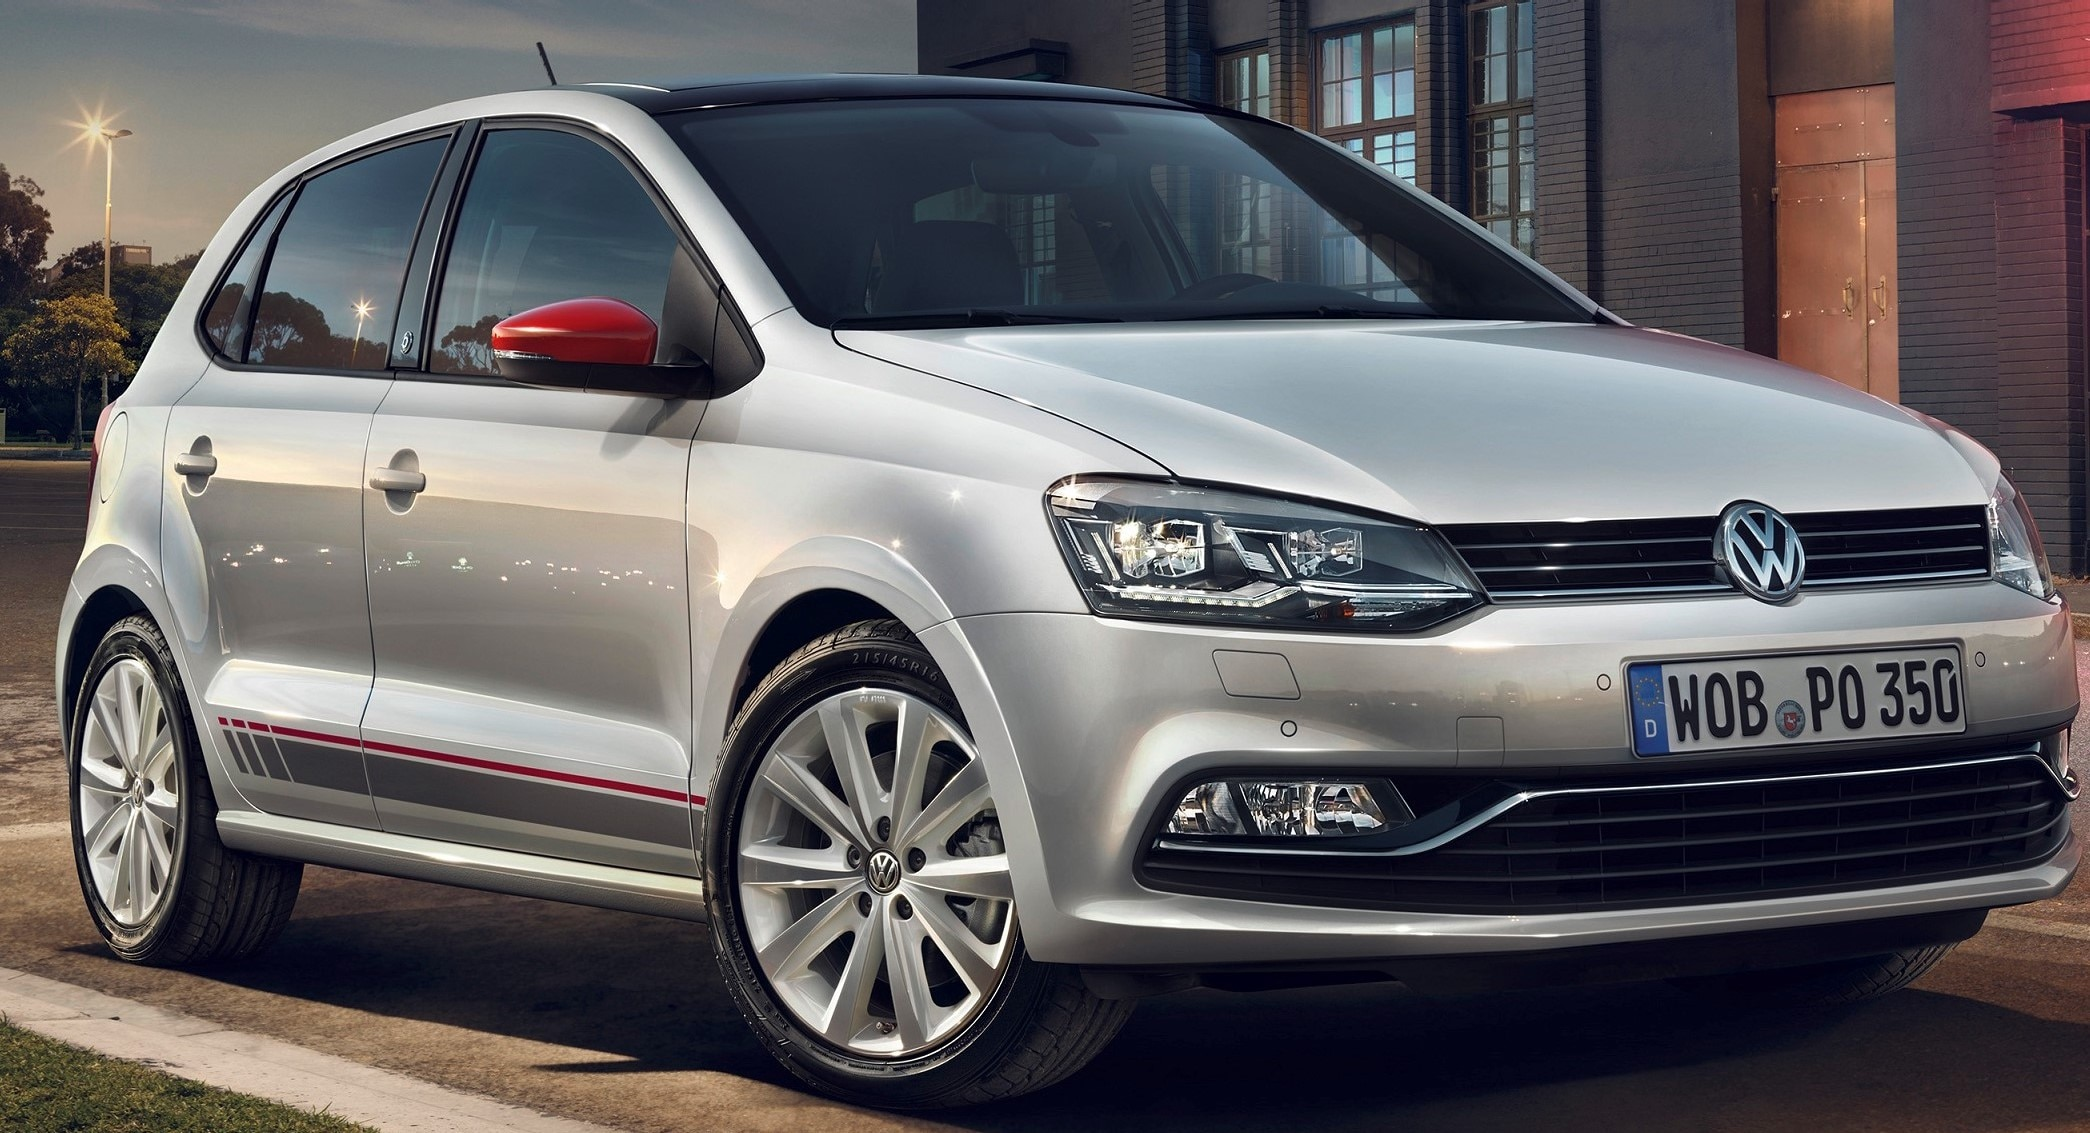 Volkswagen polo review motors average price for a volkswagen polo publicscrutiny Choice Image